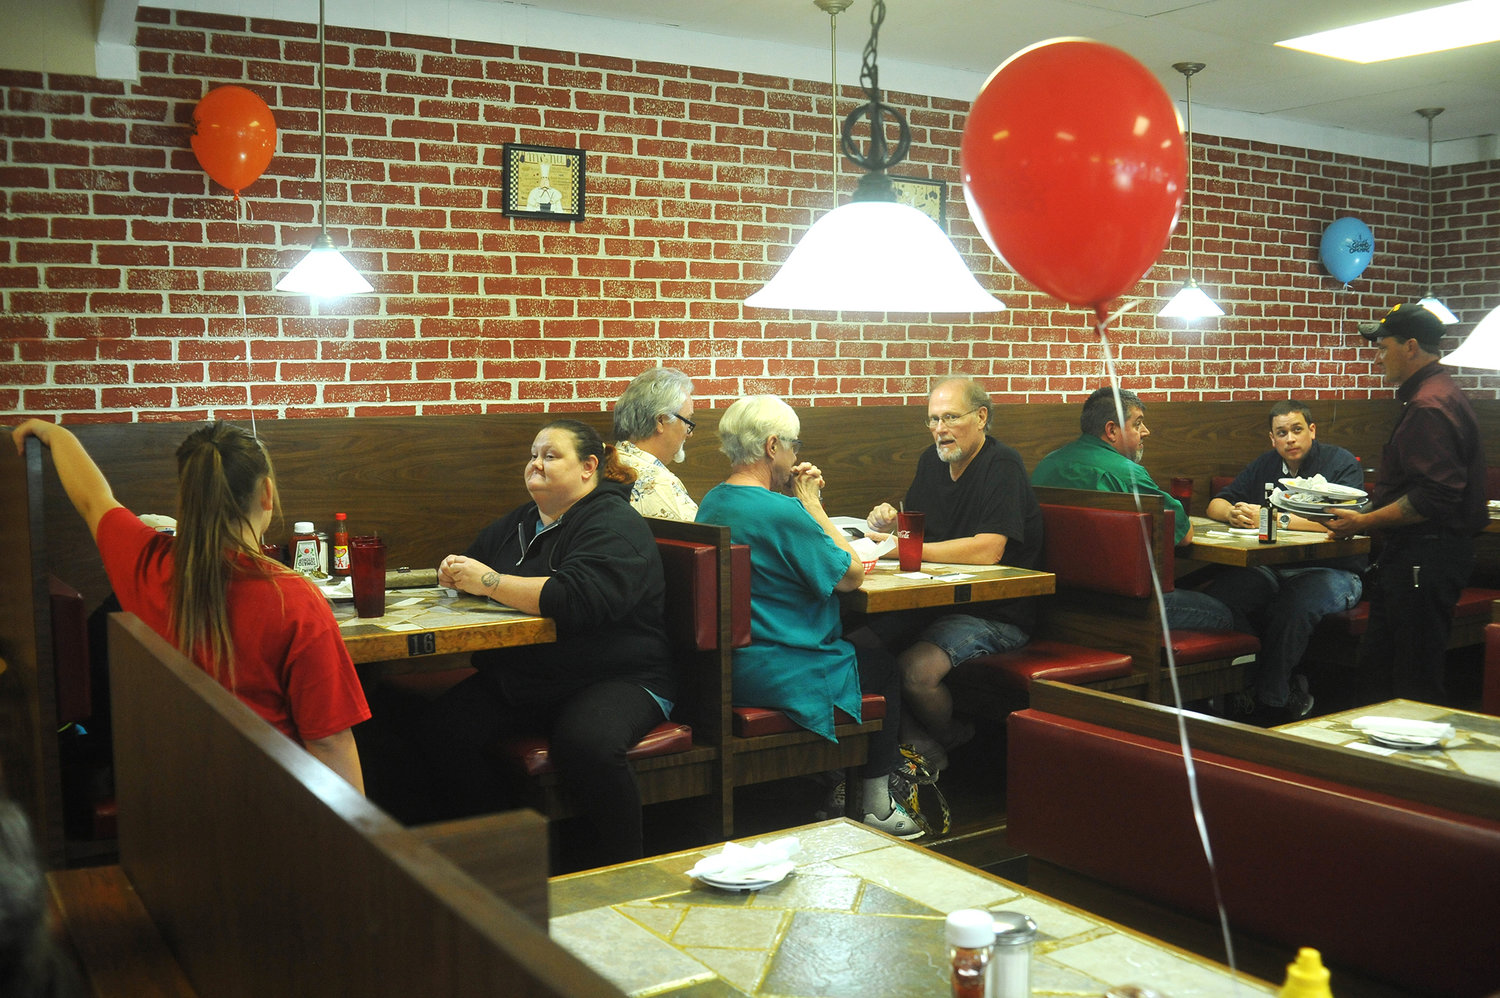 A new option for Italian food in Siler City.Grand opening celebration balloons fill the air at new restaurant Nerricio's last Tuesday, as patrons of the  restaurant enjoy a meal there. The menu offers traditional Italian fare, with subs and burgers, and all-day breakfast.